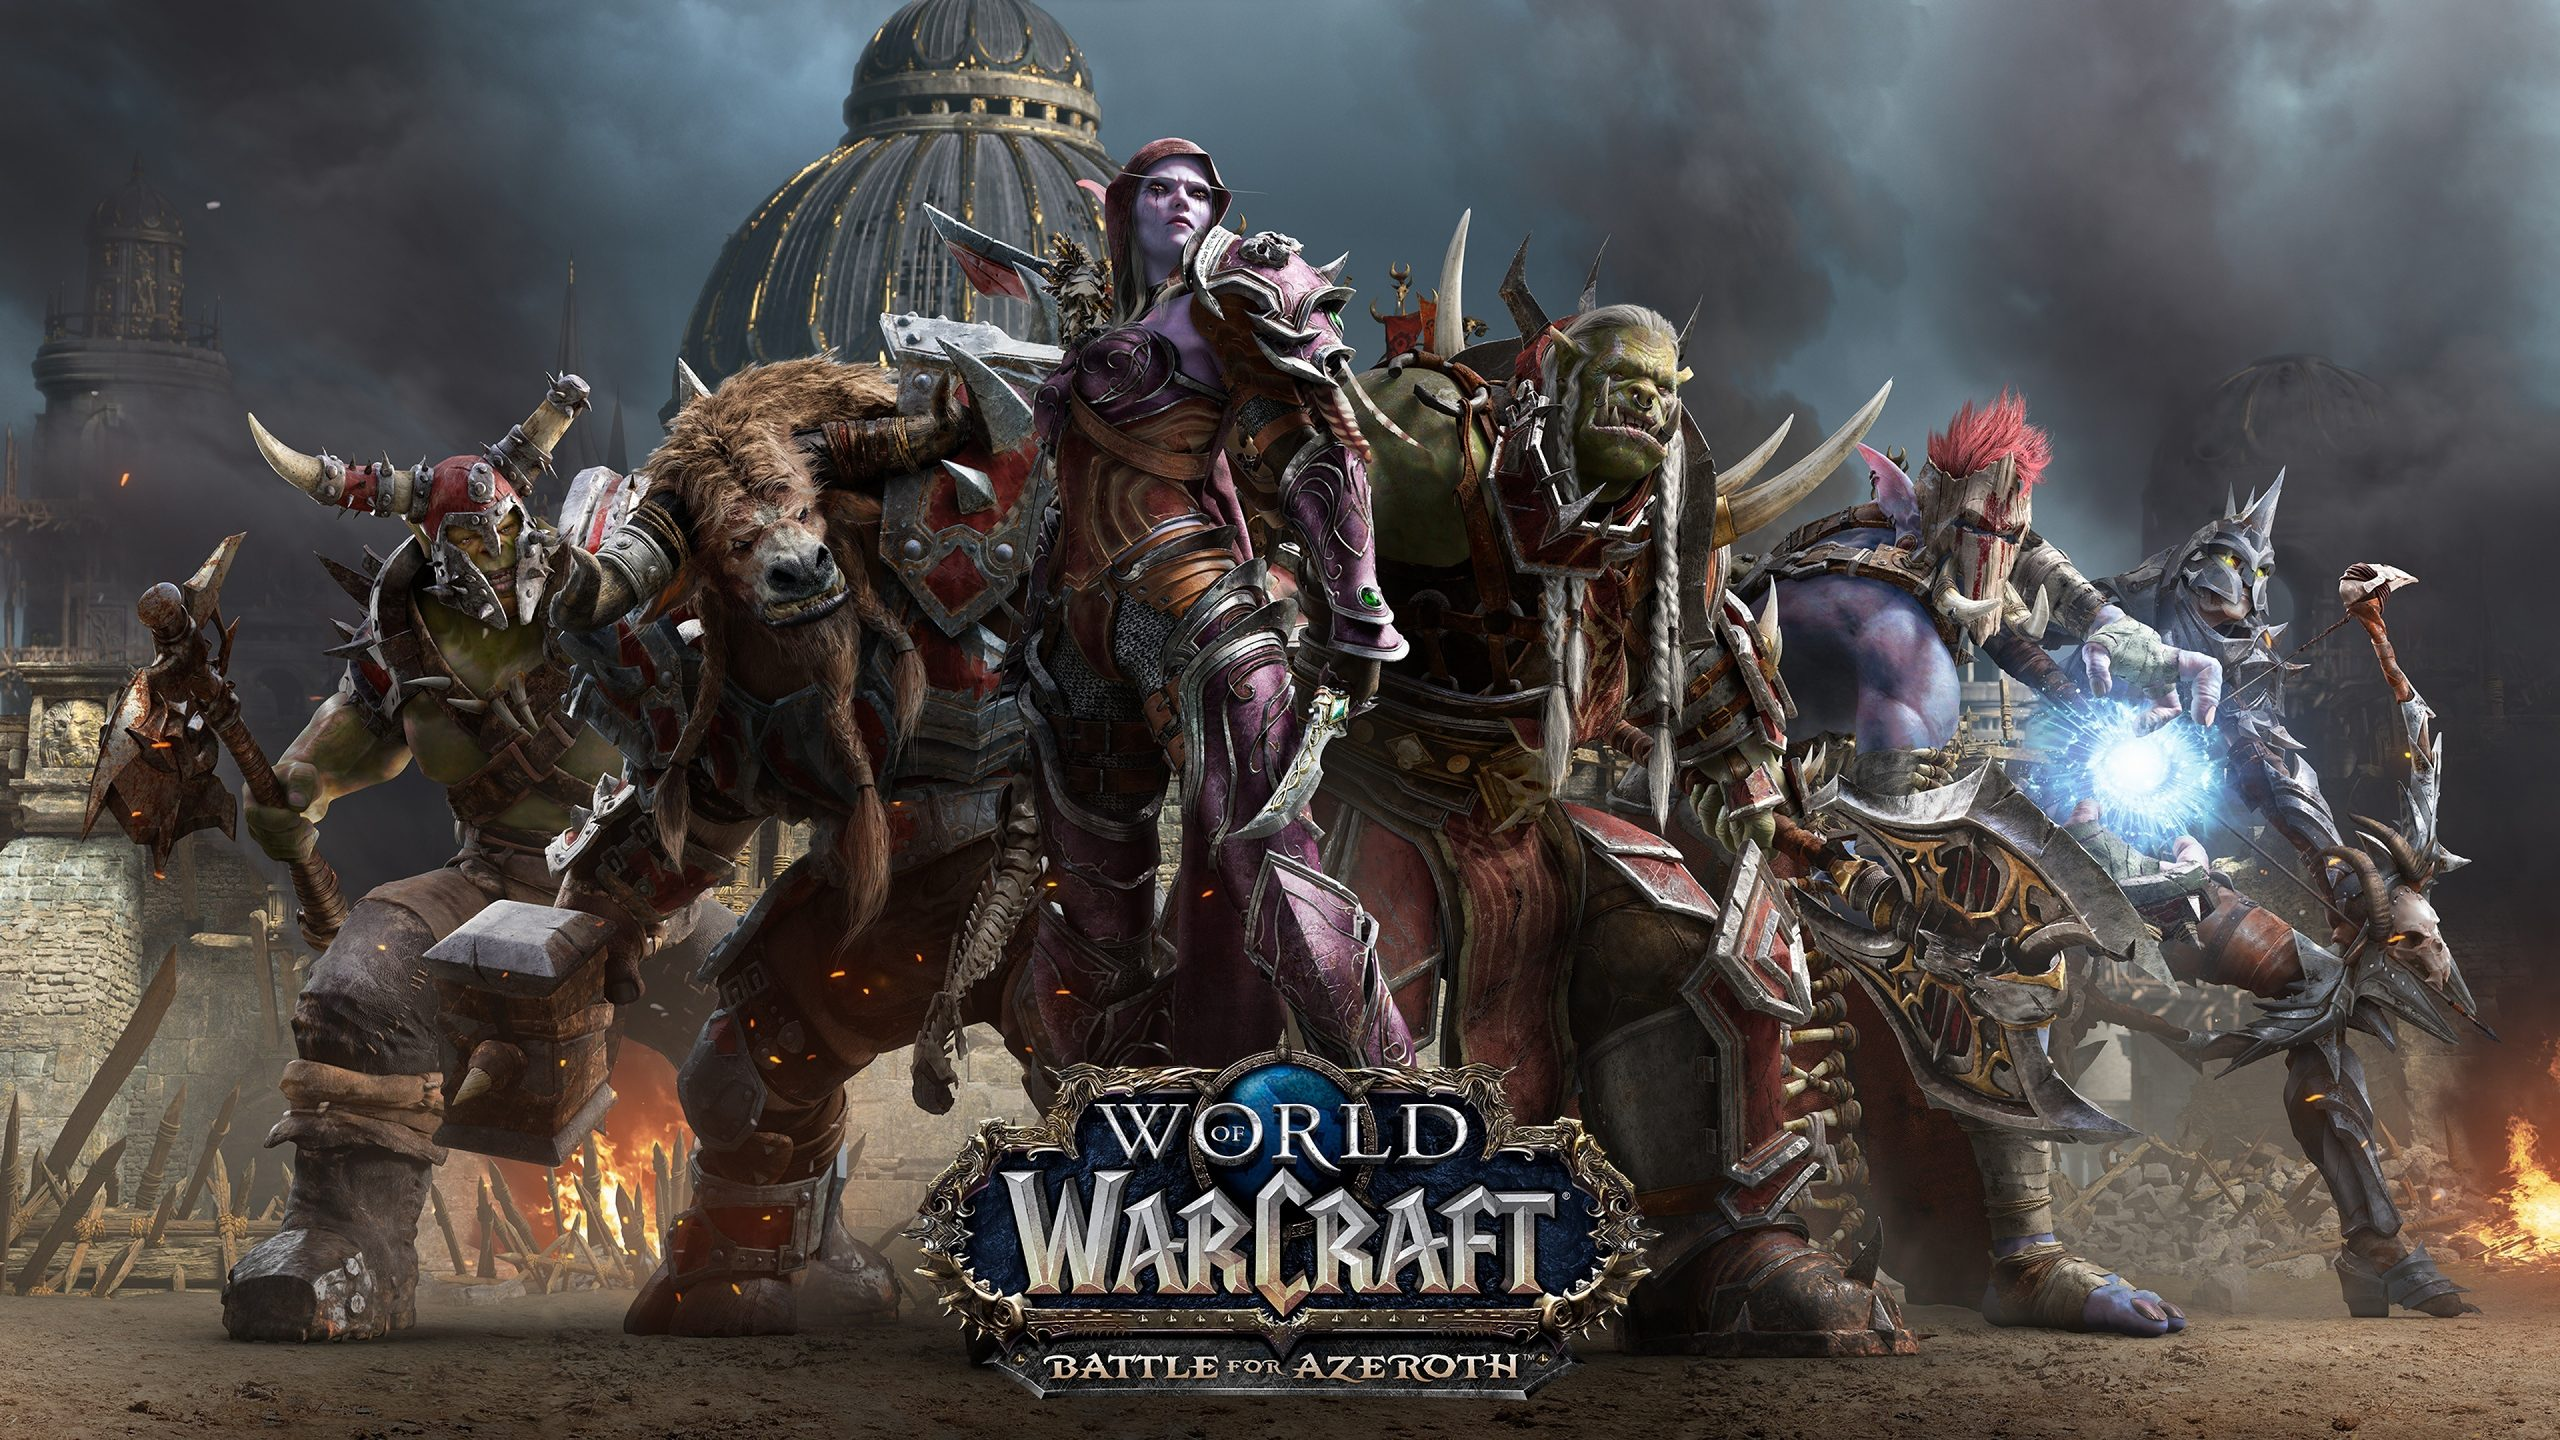 World of Warcraft Battle for Azeroth hot game wallpapers